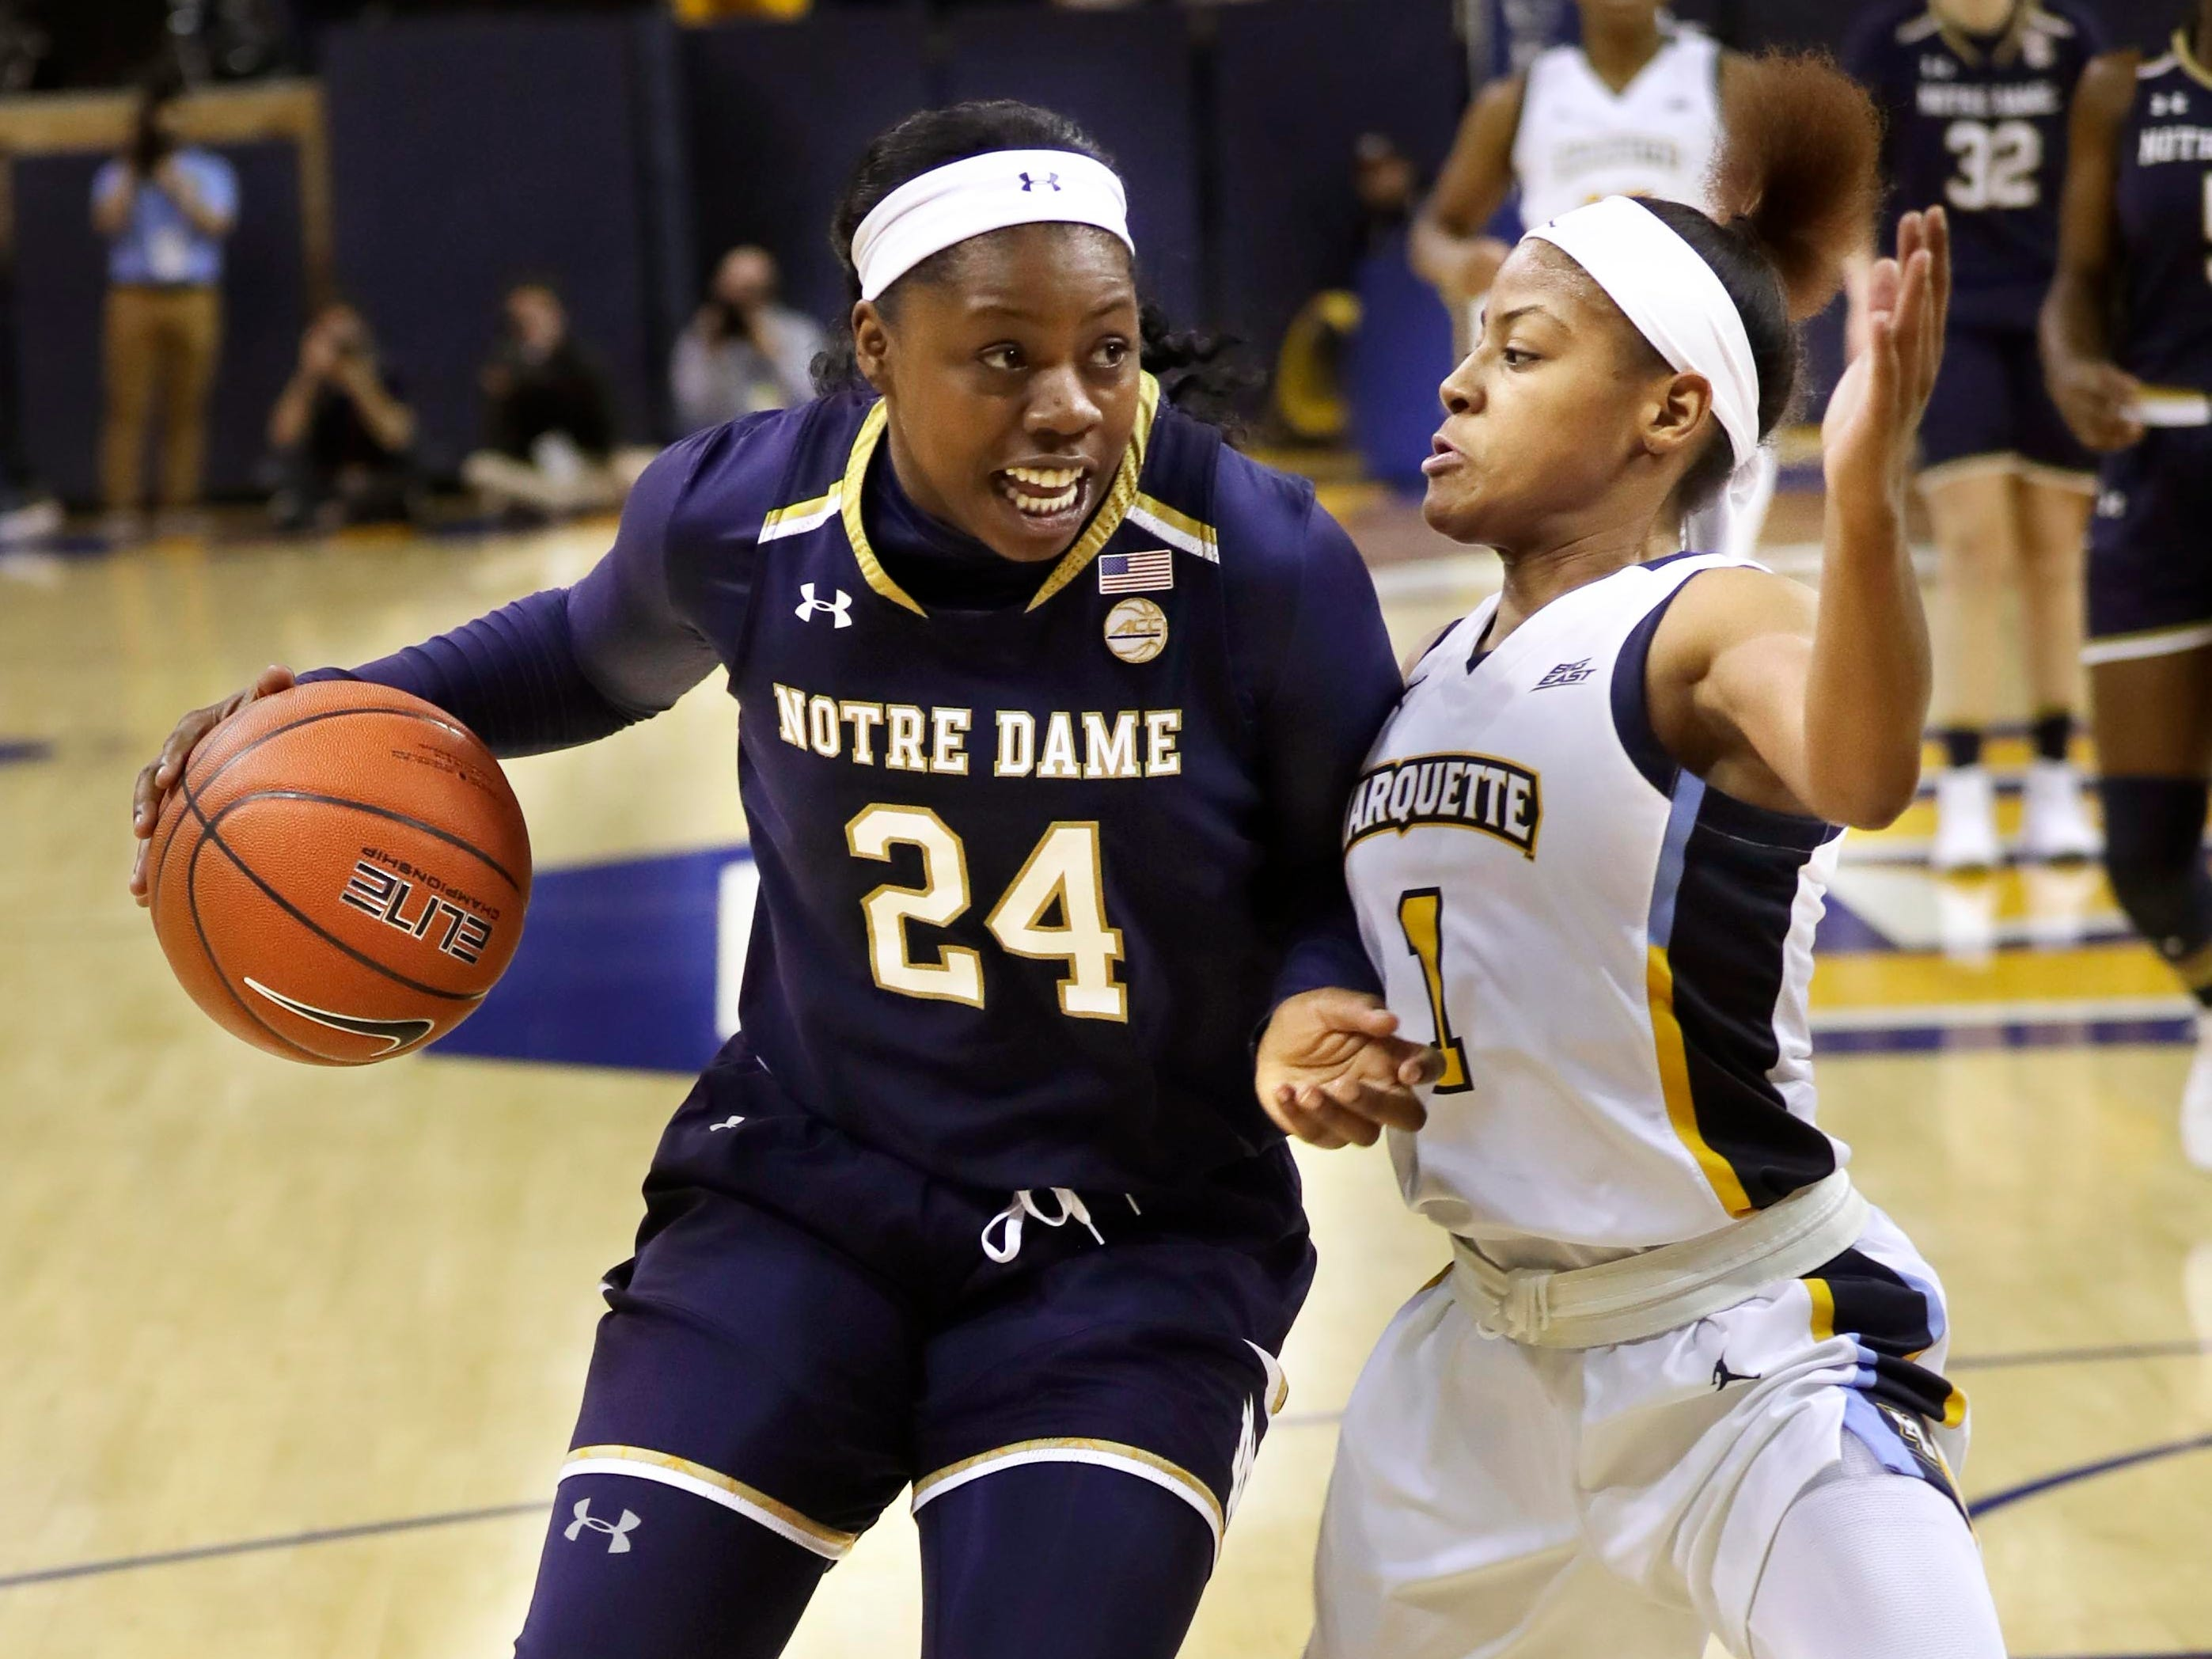 Notre Dame Fighting Irish guard Arike Ogunbowale (24) drives against Marquette Golden Eagles guard Danielle King during a nonconference game Dec. 22 at the Al McGuire Center.